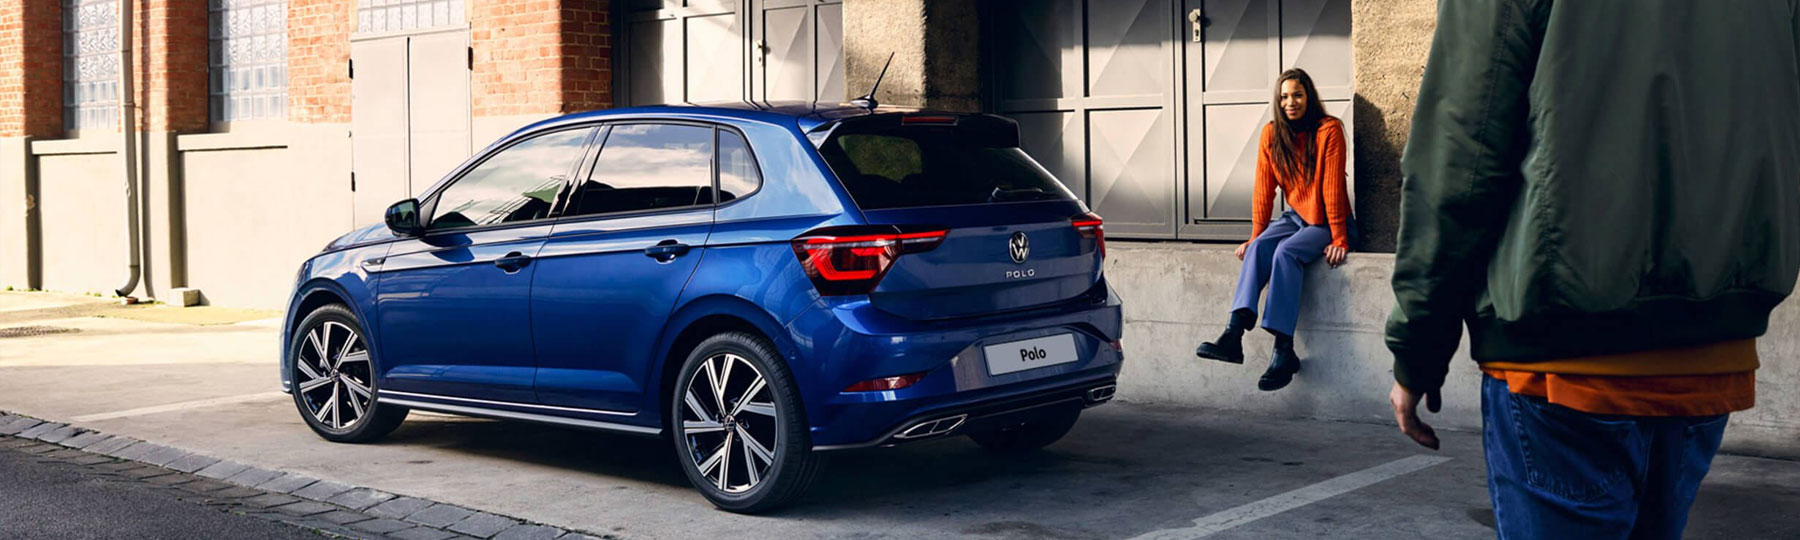 Volkswagen Polo Pcp Finance Offers Beadles Volkswagen